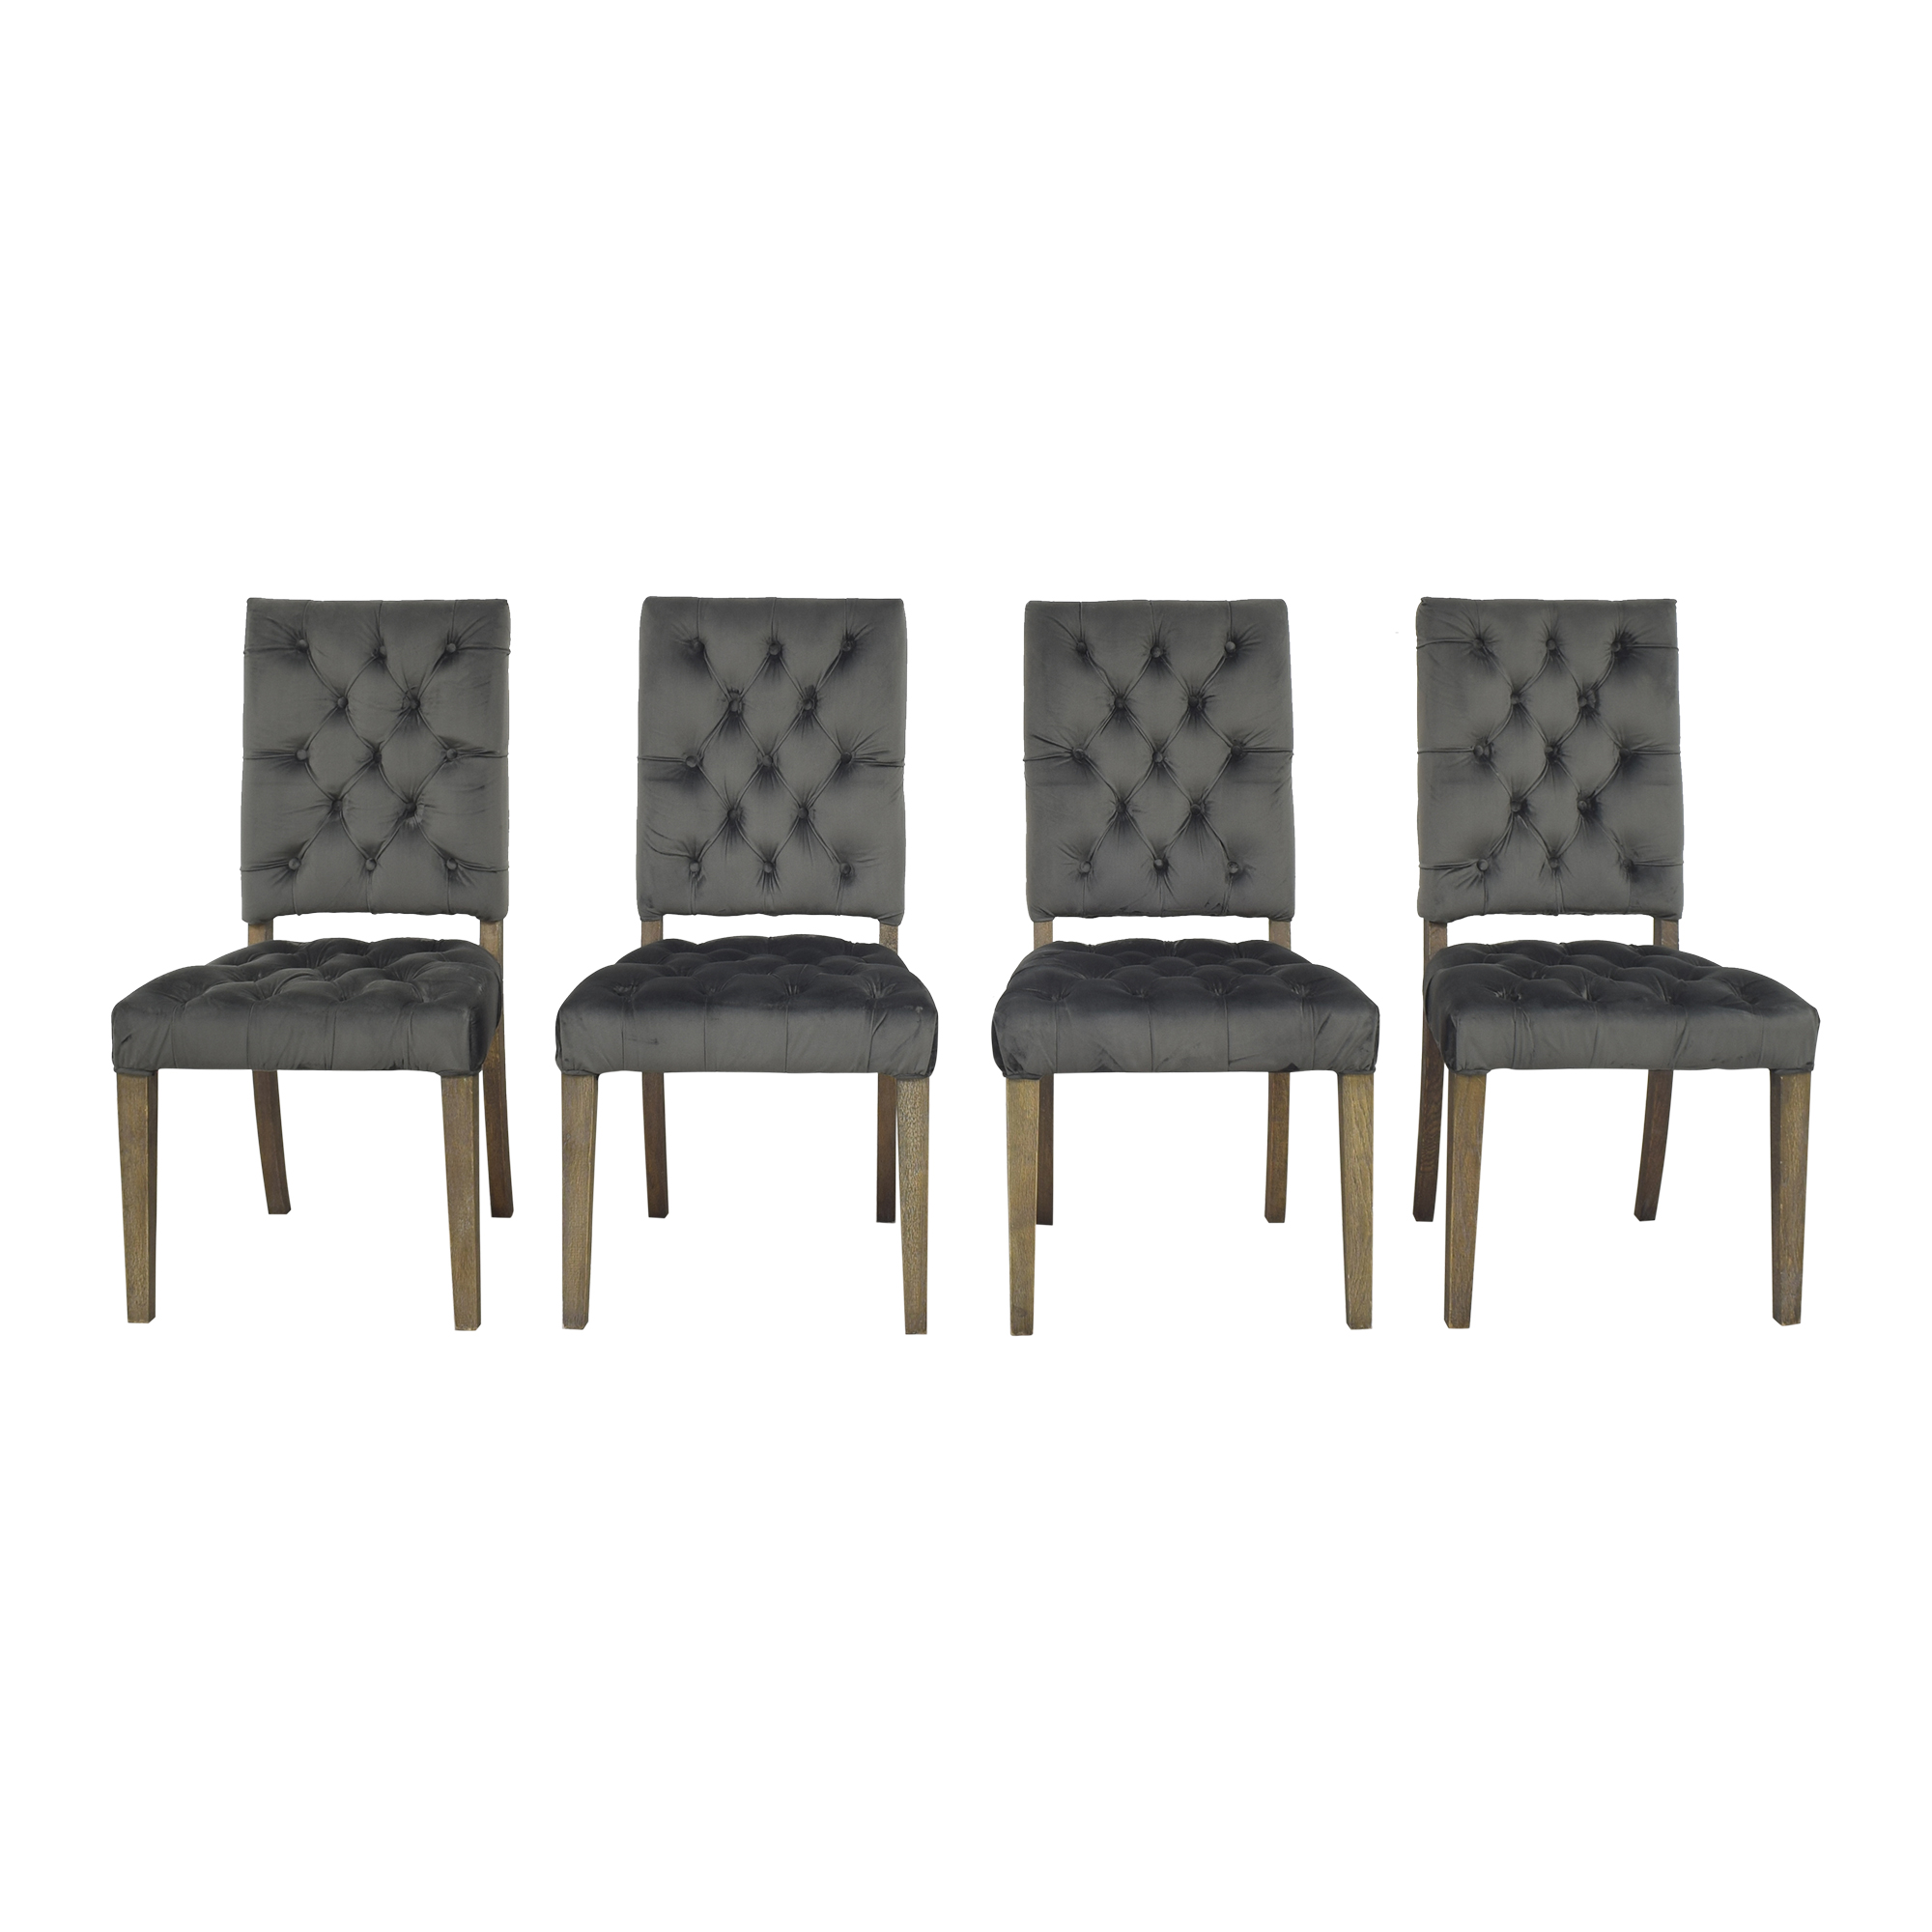 Christopher Knight Home Christopher Knight Home Saltillo Dining Chairs Chairs